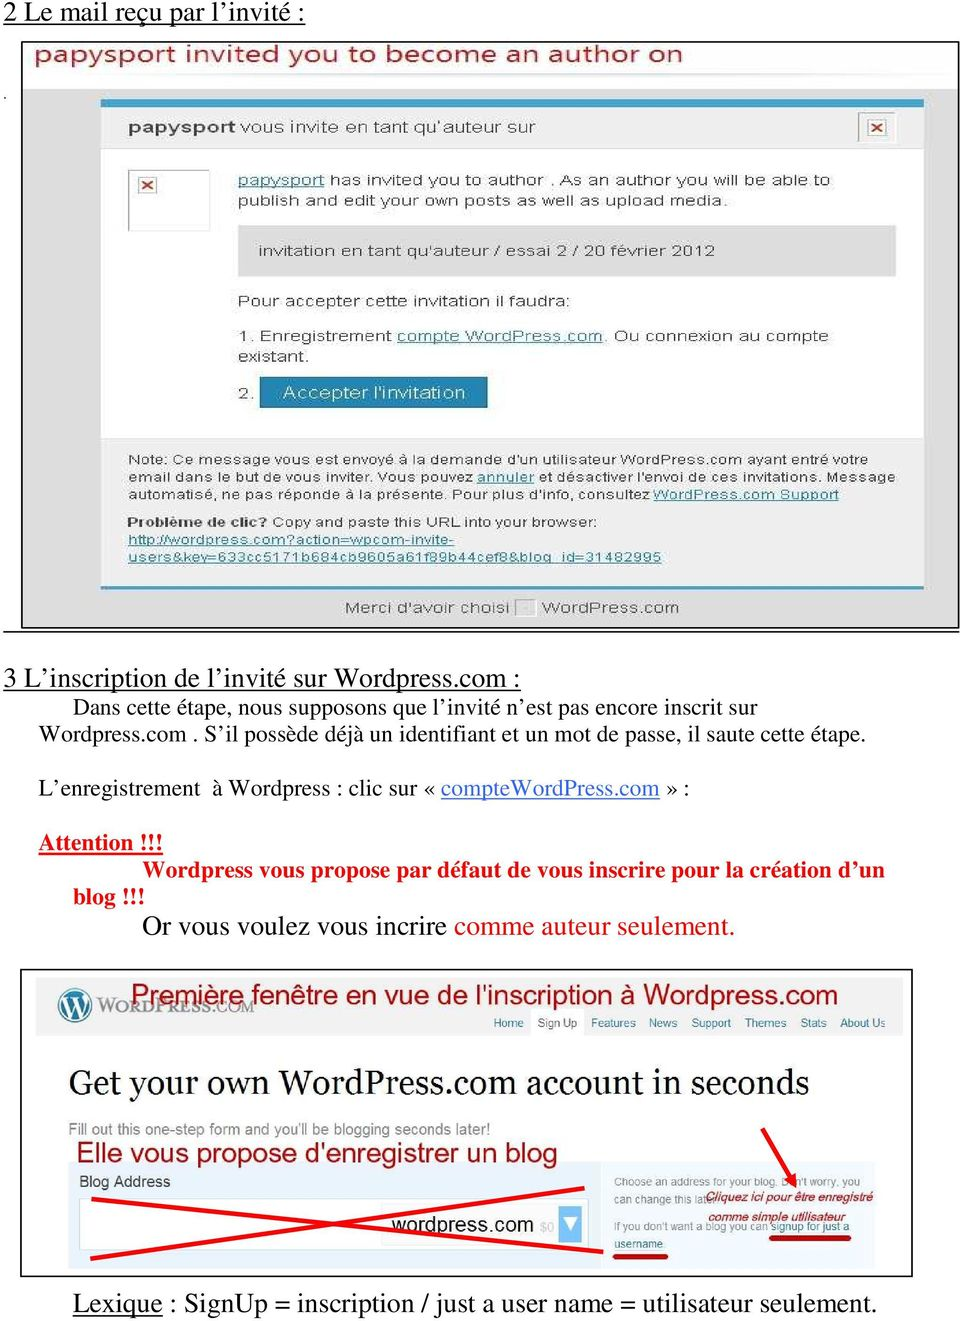 L enregistrement à Wordpress : clic sur «comptewordpress.com» : Attention!